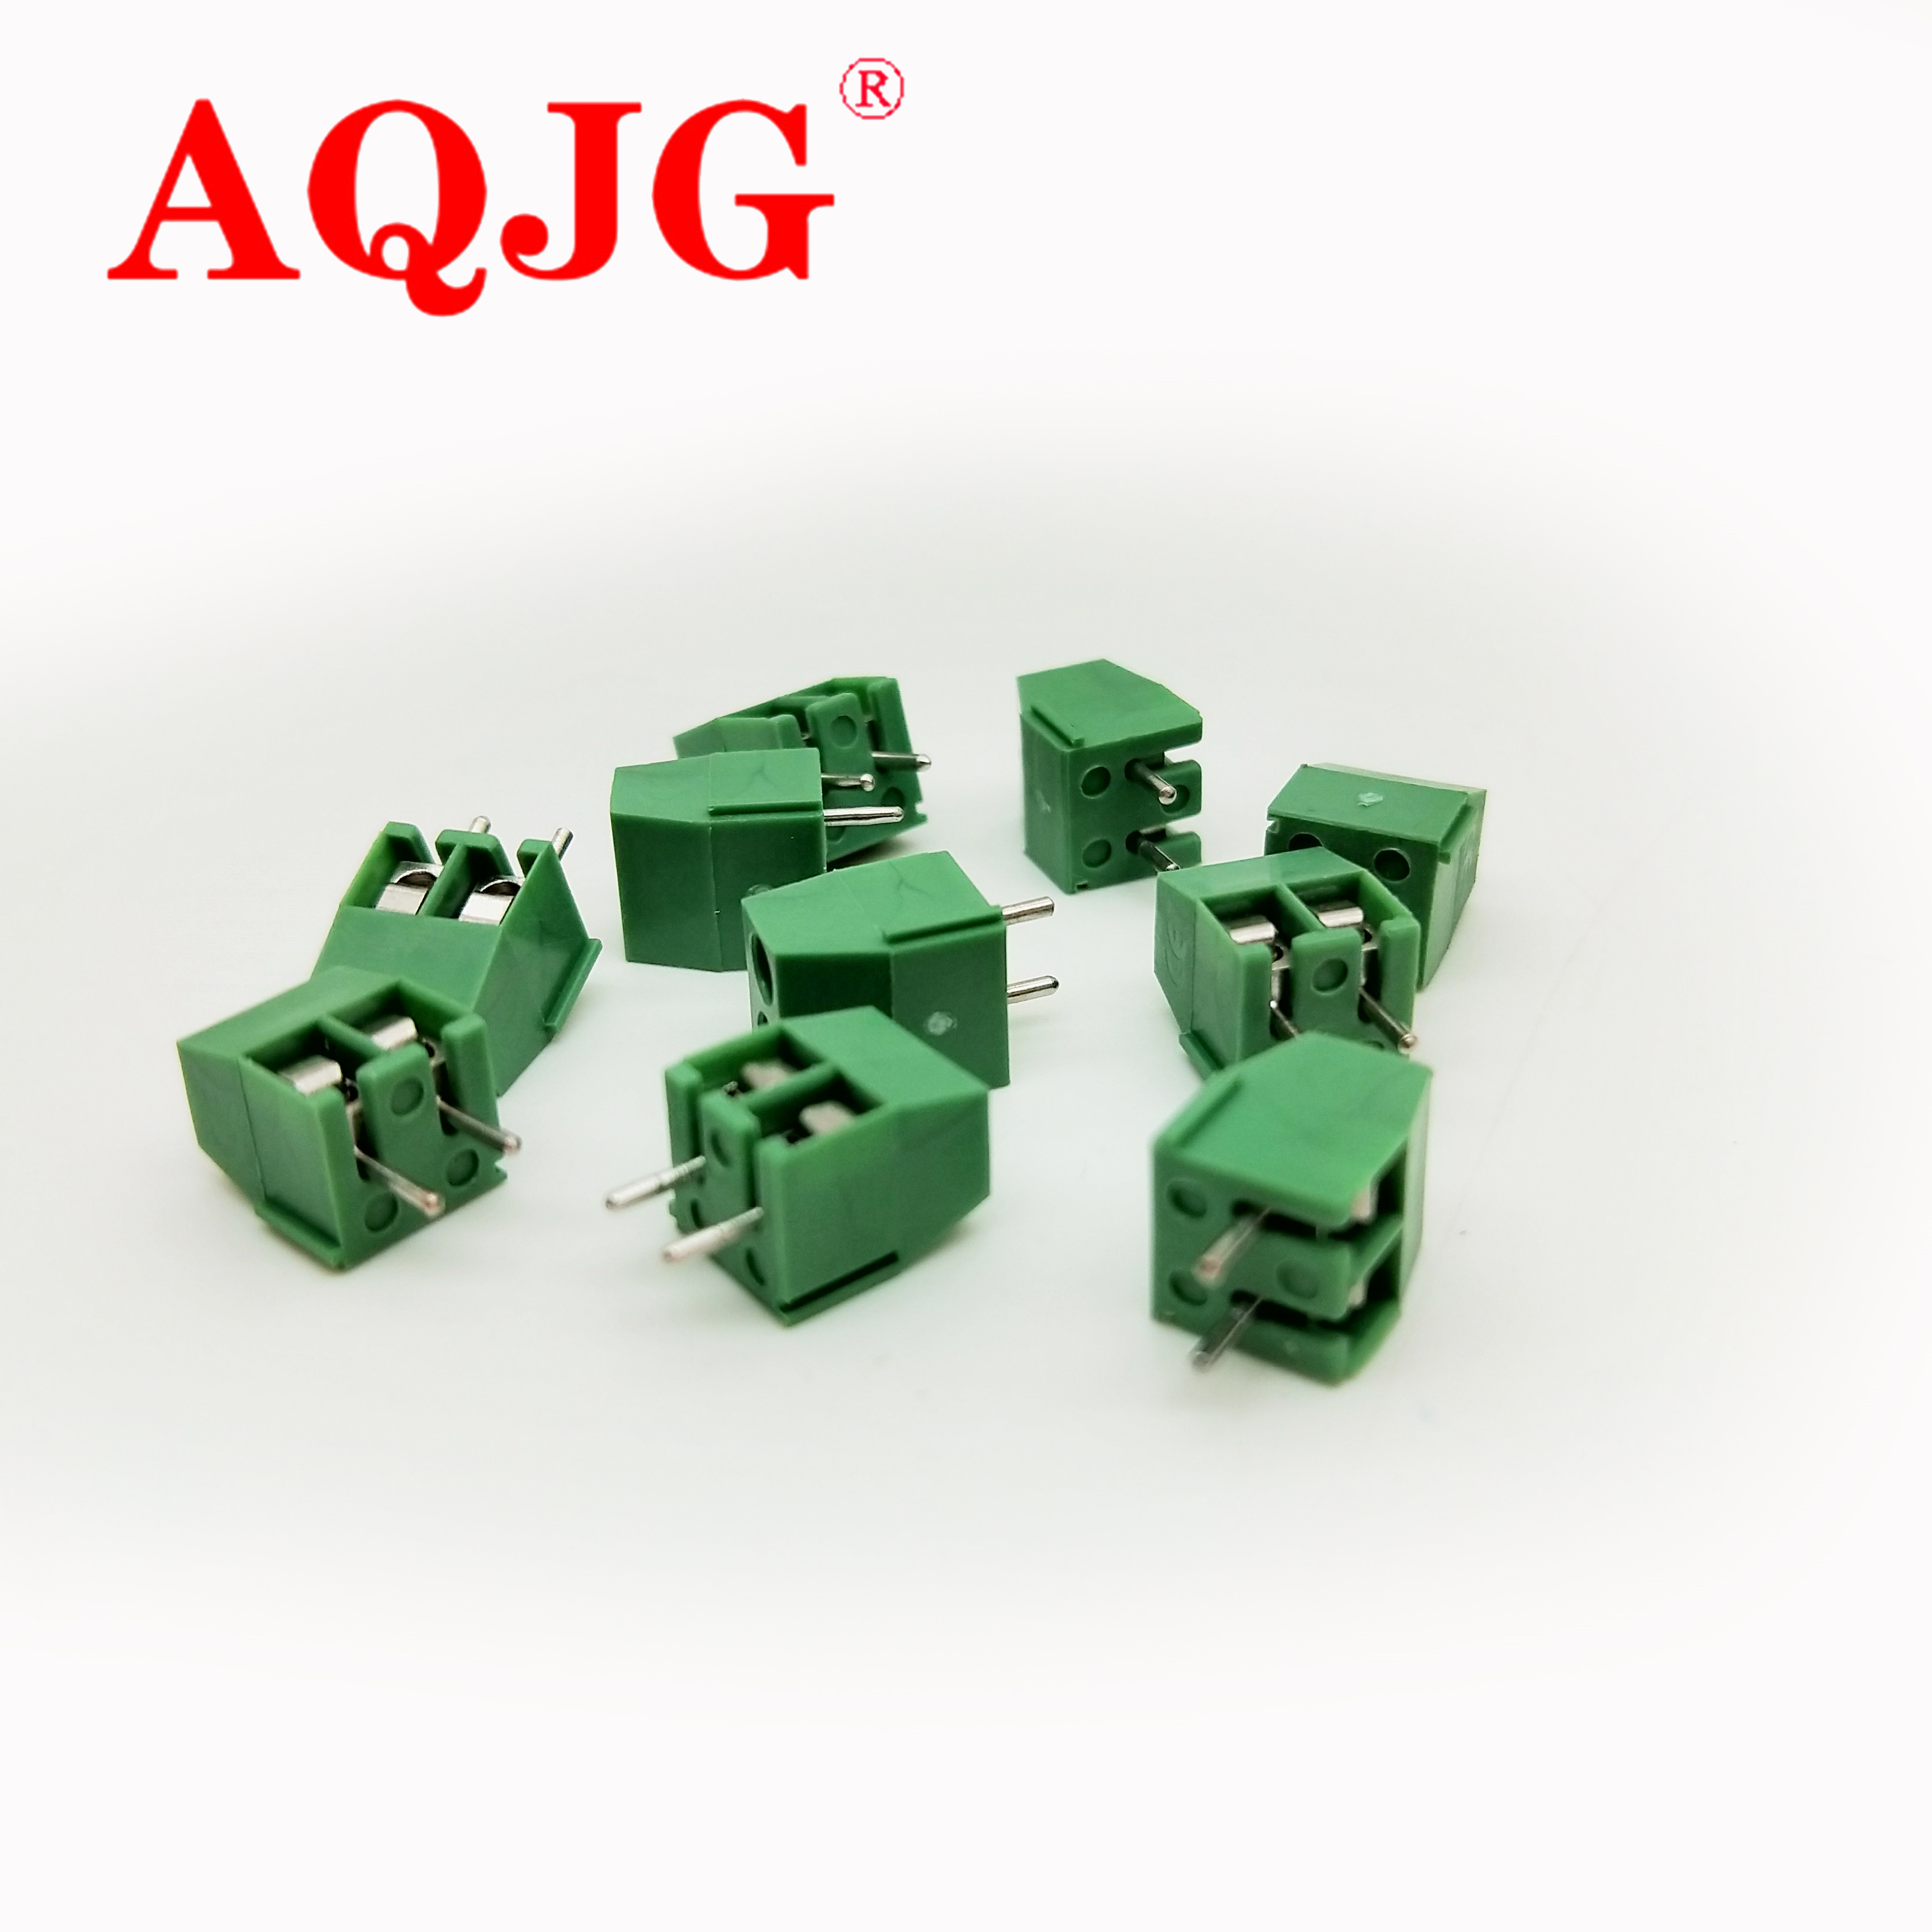 KF350 2p /3.5mm Pitch 7.5mm PCB Screw Terminal Block Connectors,binding Post Wire Connecting Terminals Spacing AQJG